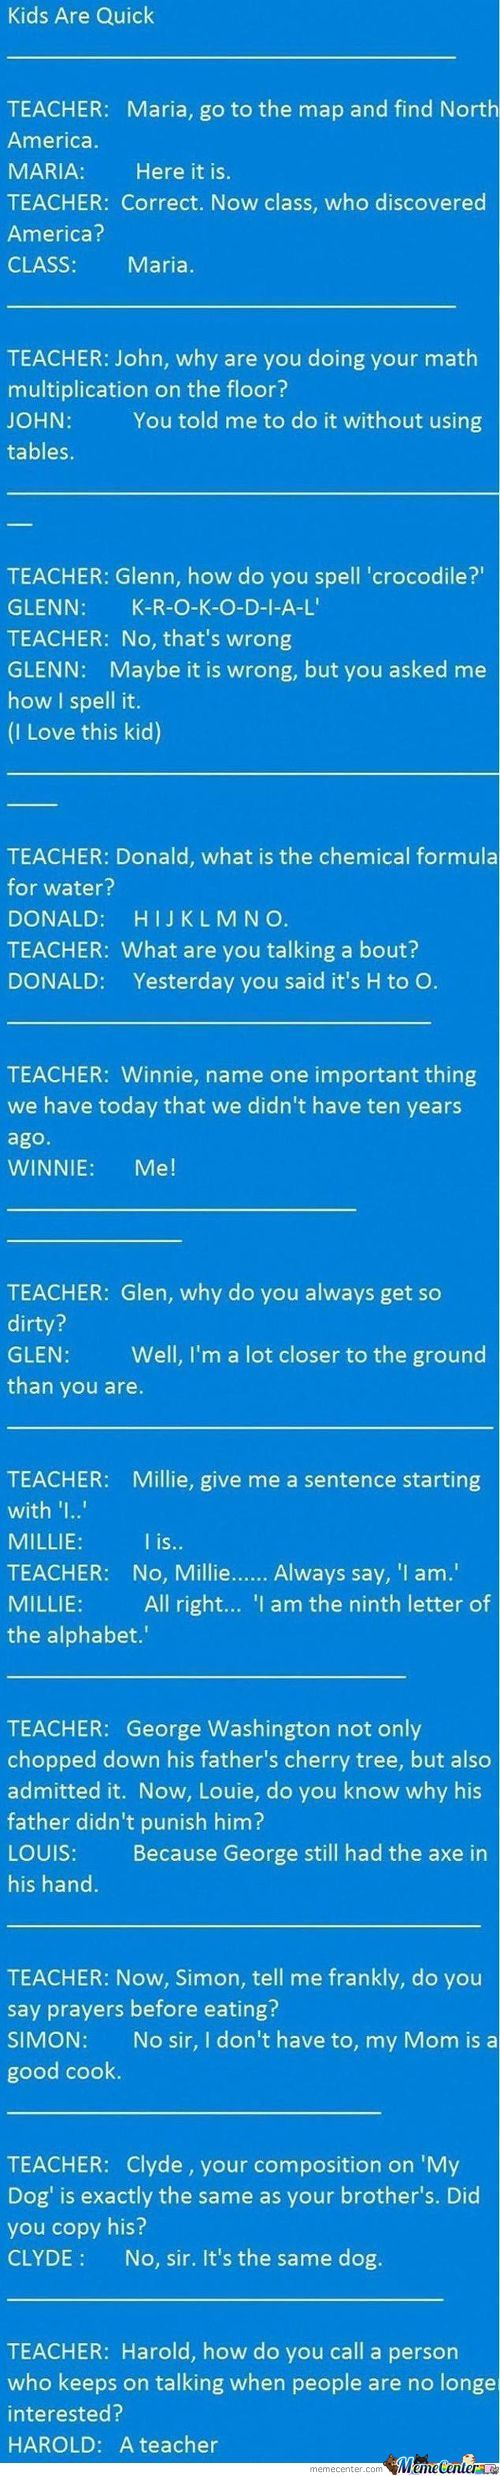 Some School Memories